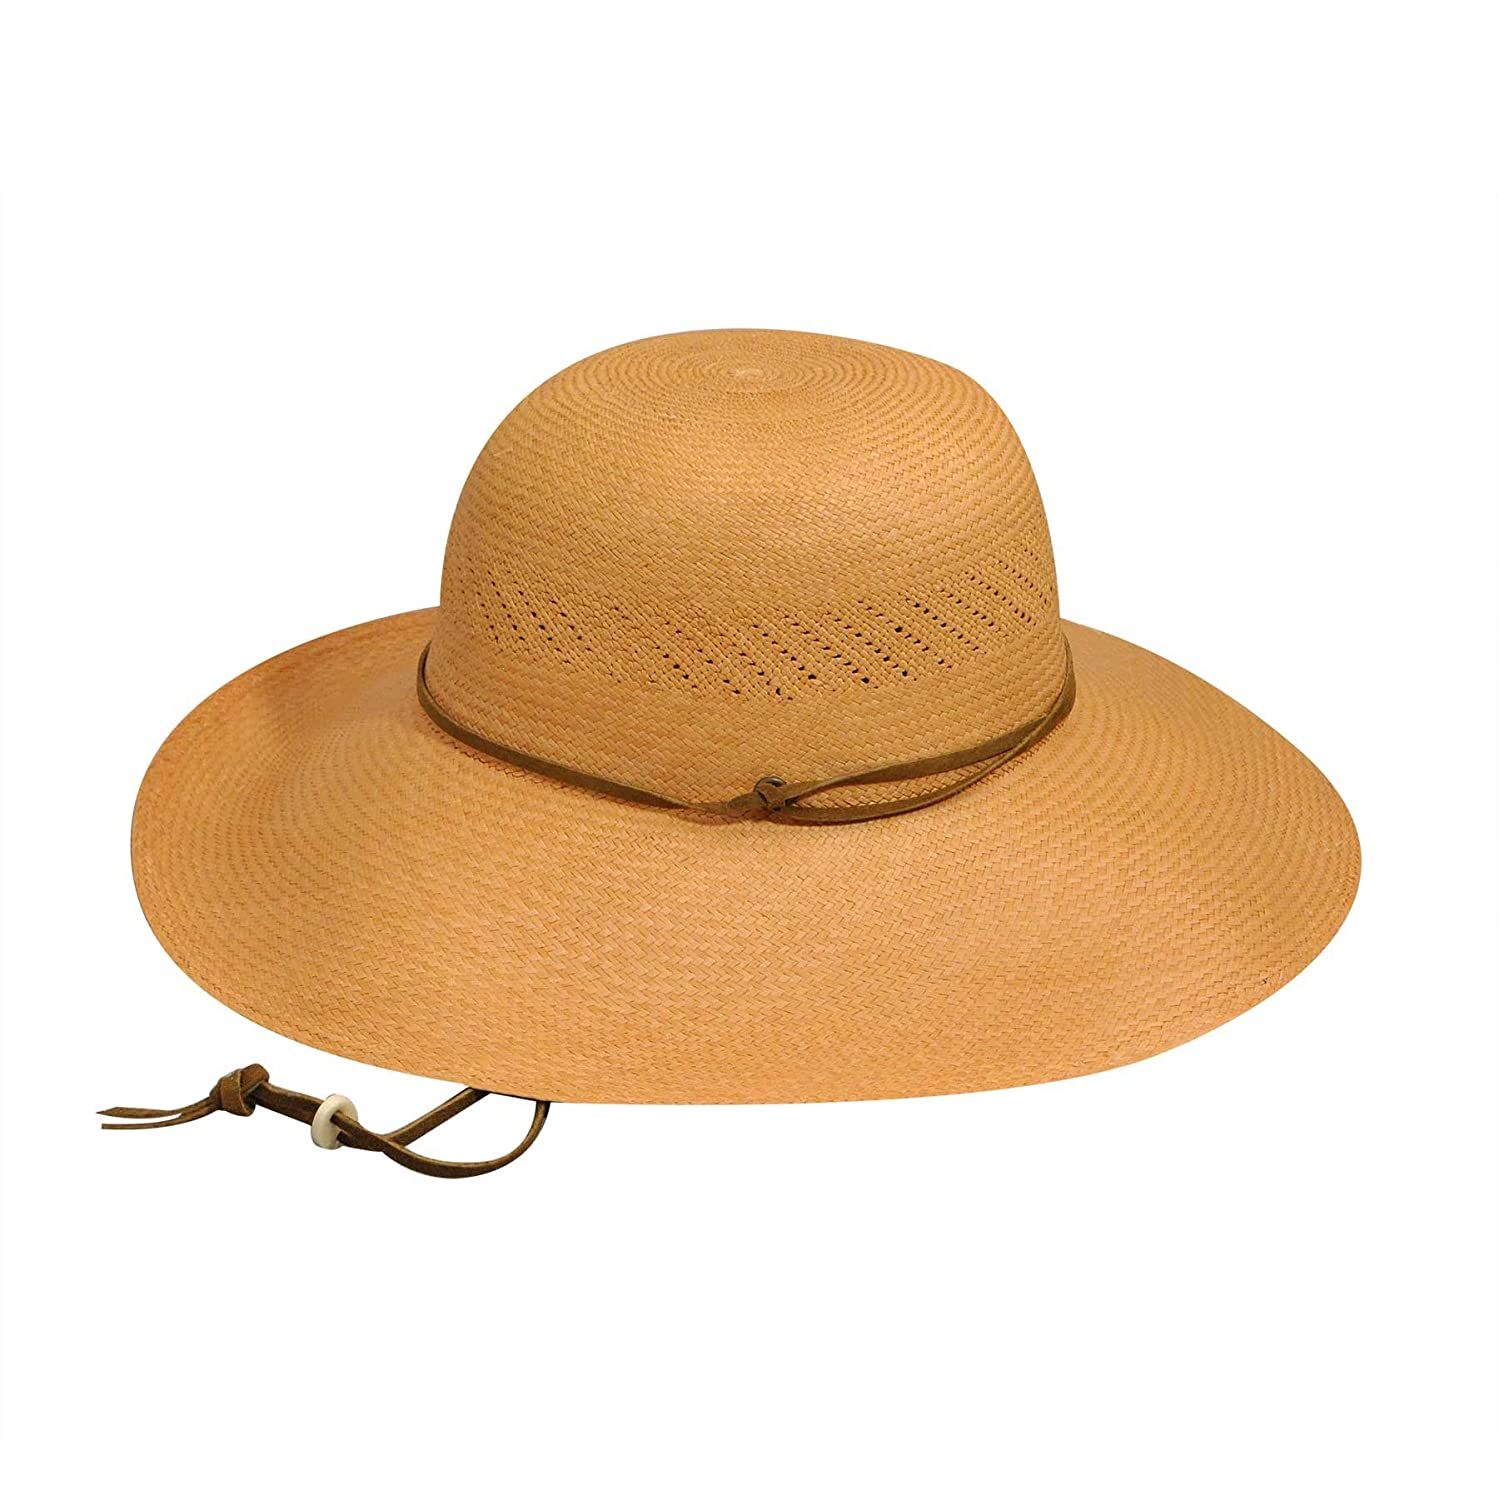 Pantropic Mens River Roll-up Panama Hat with Creased Crown Packable